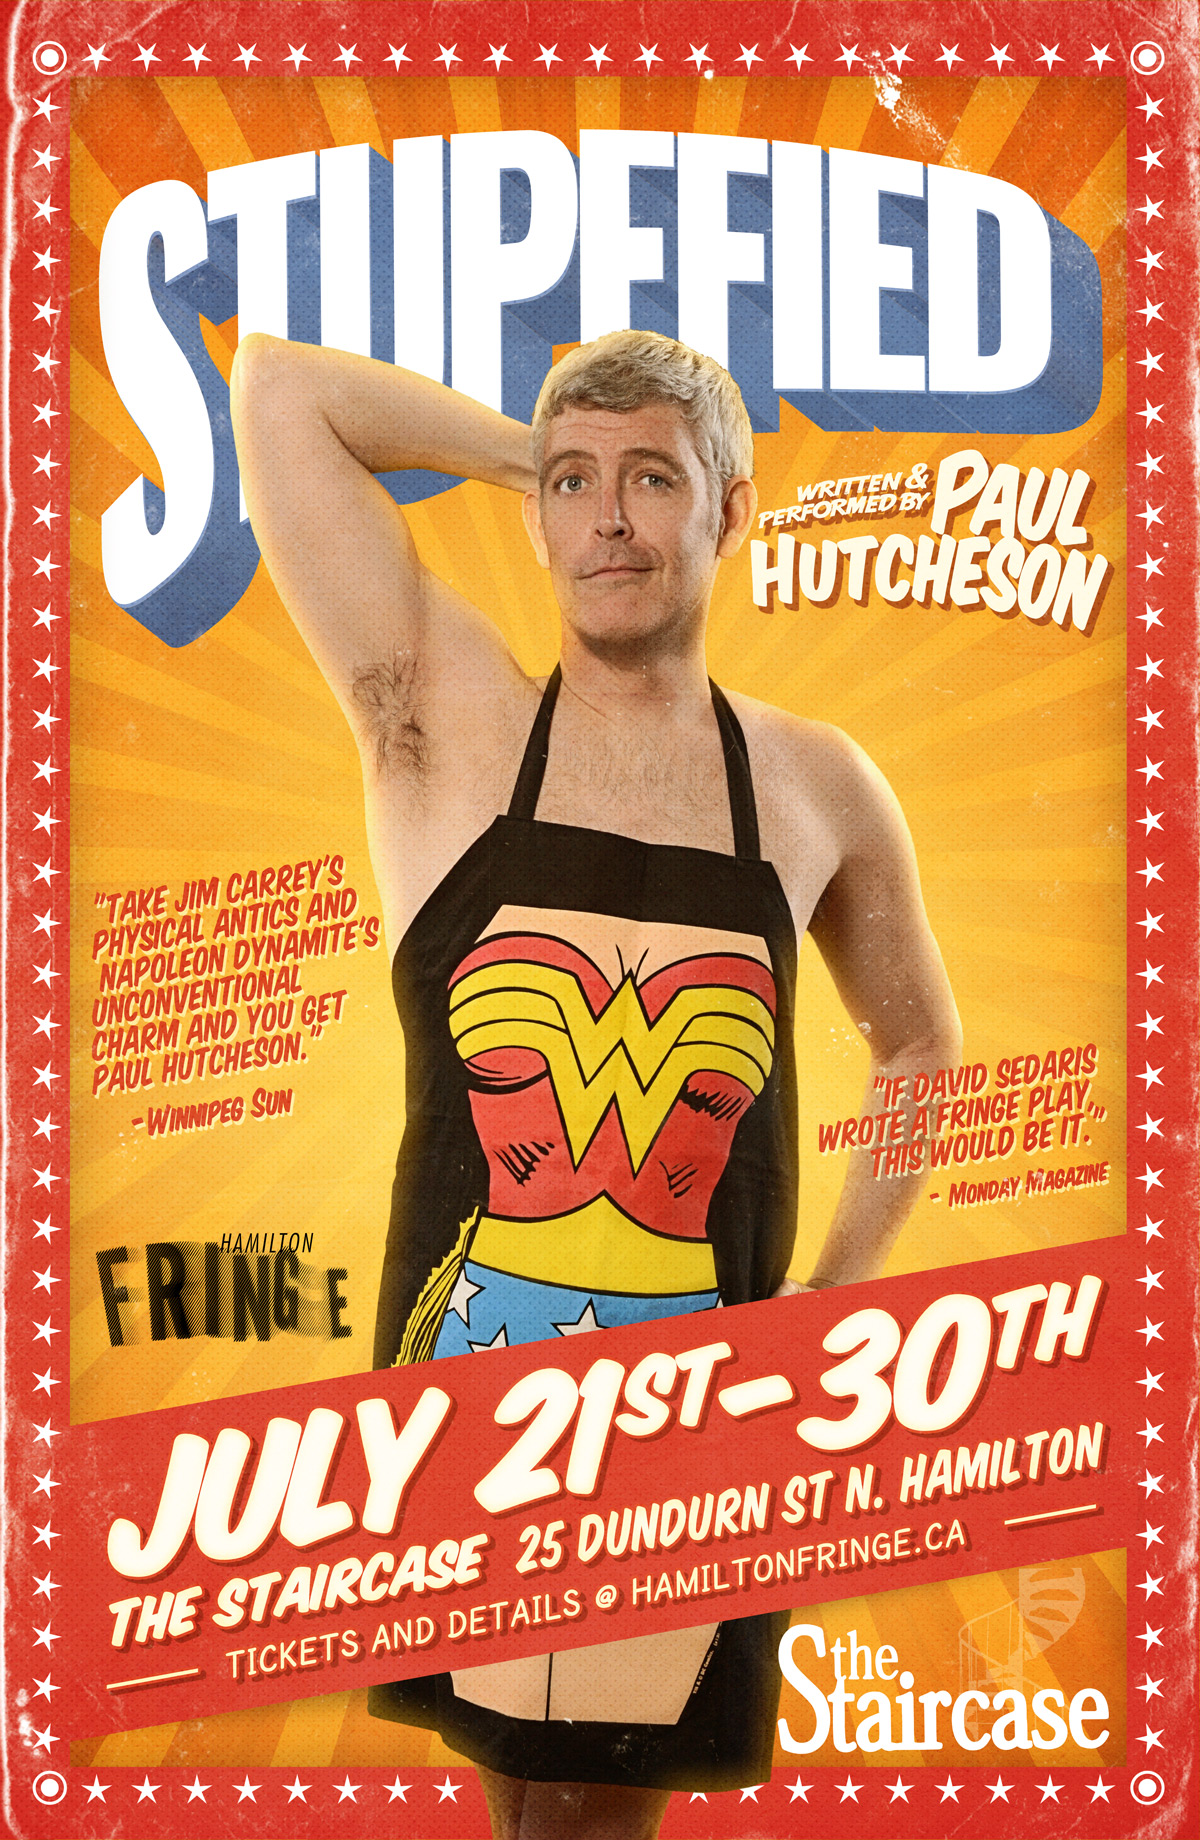 The Inlet Online, Stupefied, Paul Hutcheson, Hamilton Fringe 2017, Top picks